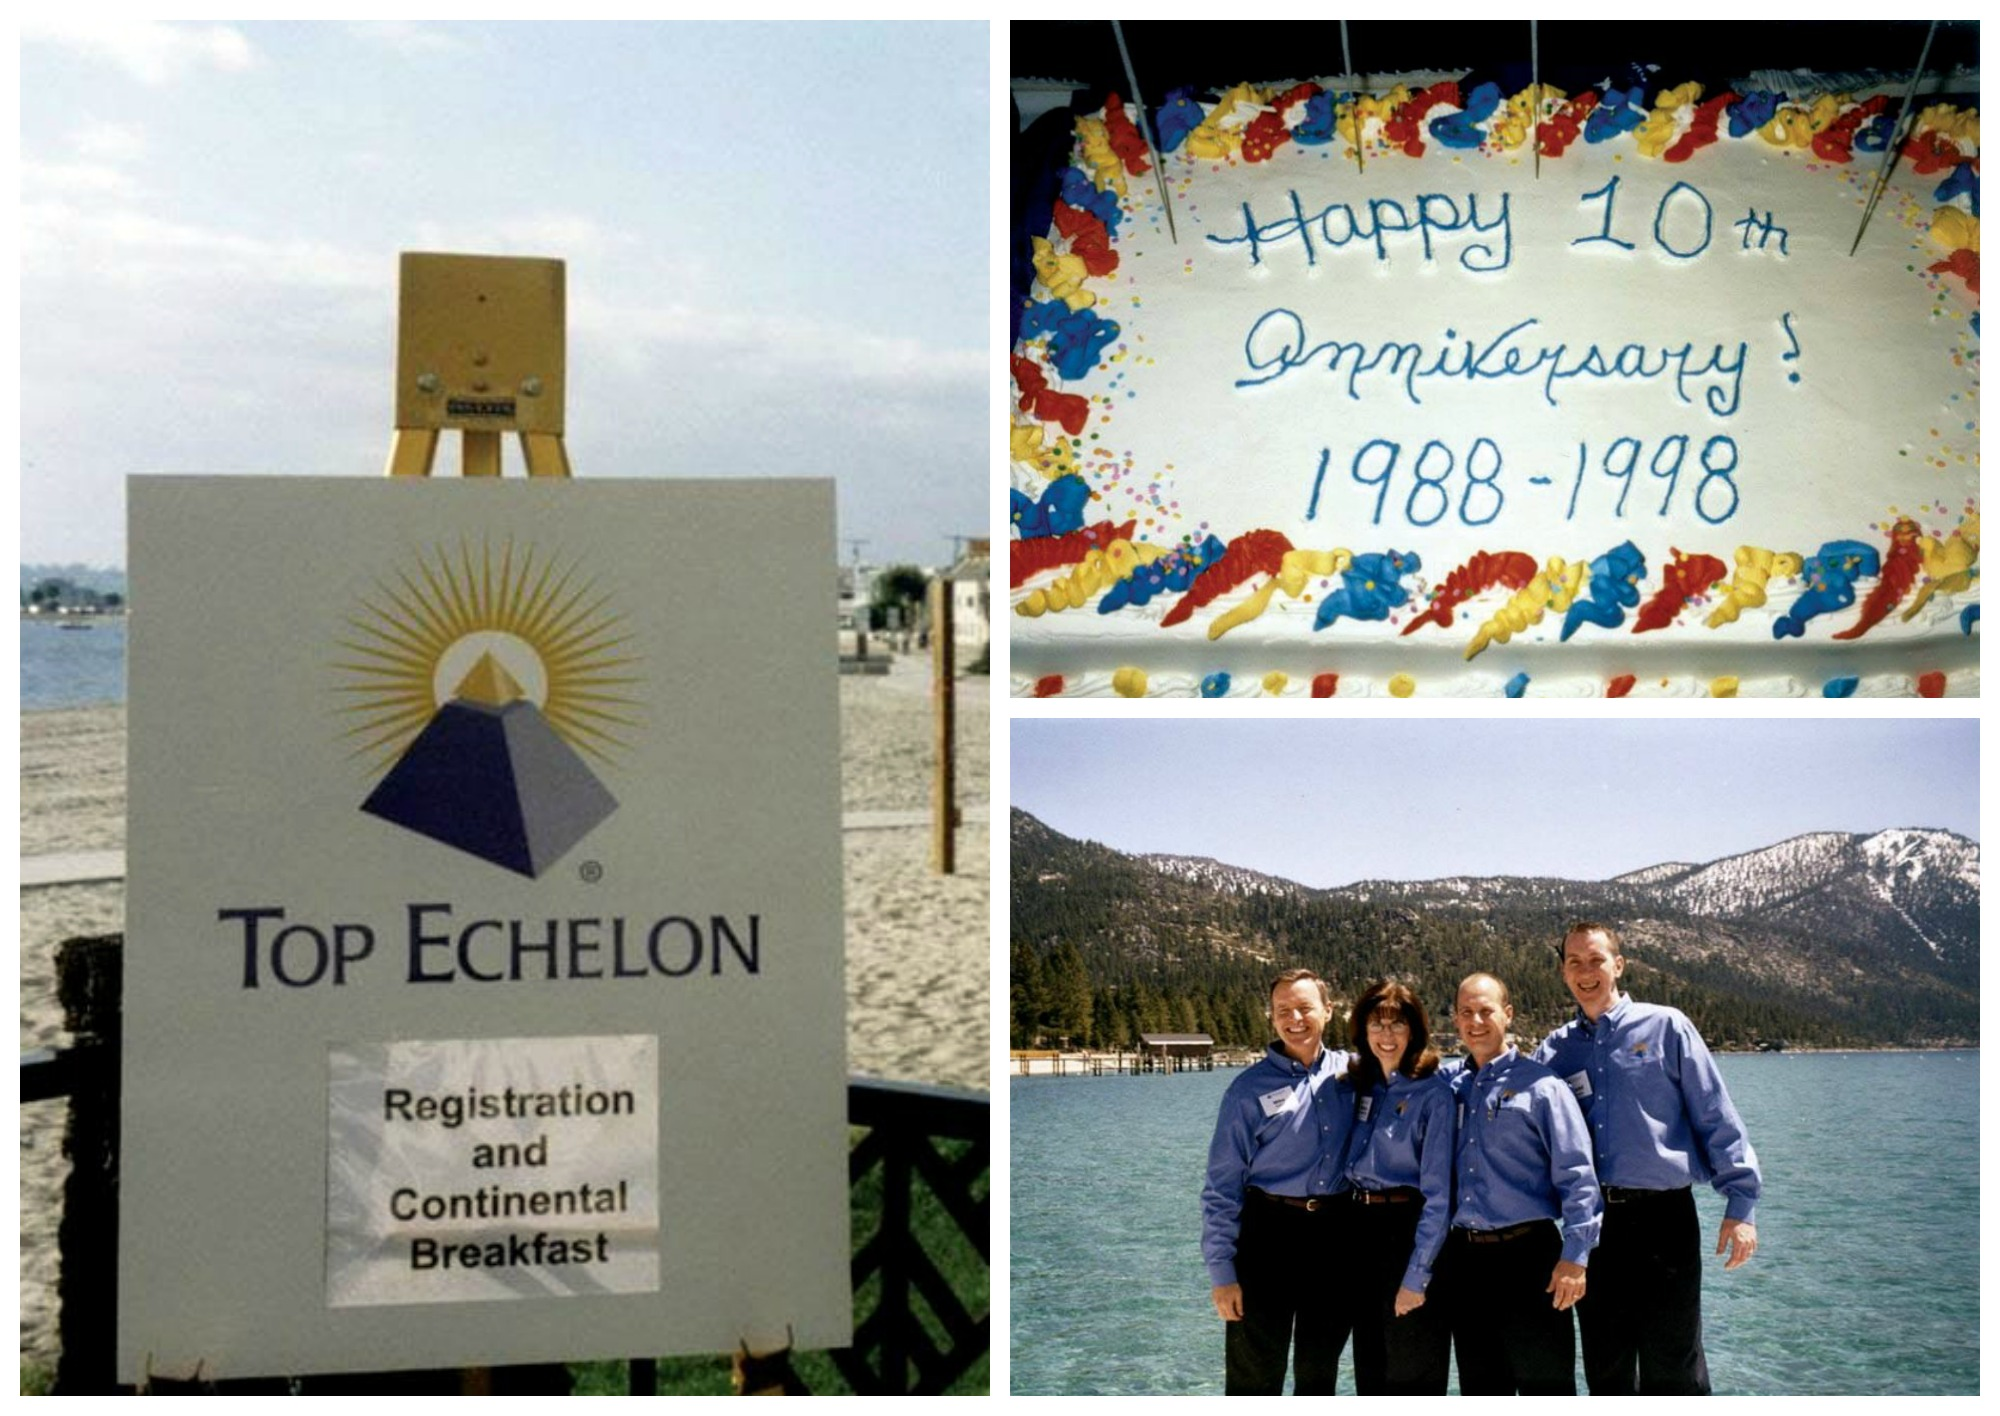 celebrate 28 years with Top Echelon